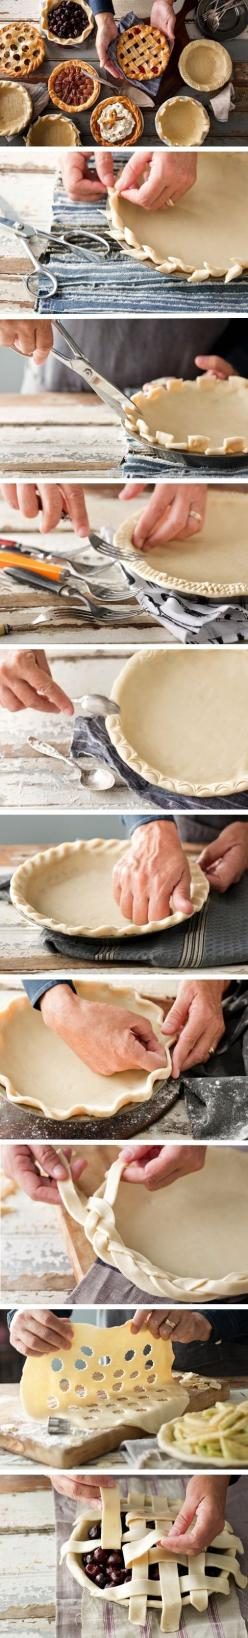 Creative Pie Crusts -- I always need advice on fluting and other pie crust decoration. I'm pretty miserable at it.: Crust Designs, Pie Crusts, Creative Pie, Feet, Pie Crust Design, Crust How To, Creative Crust